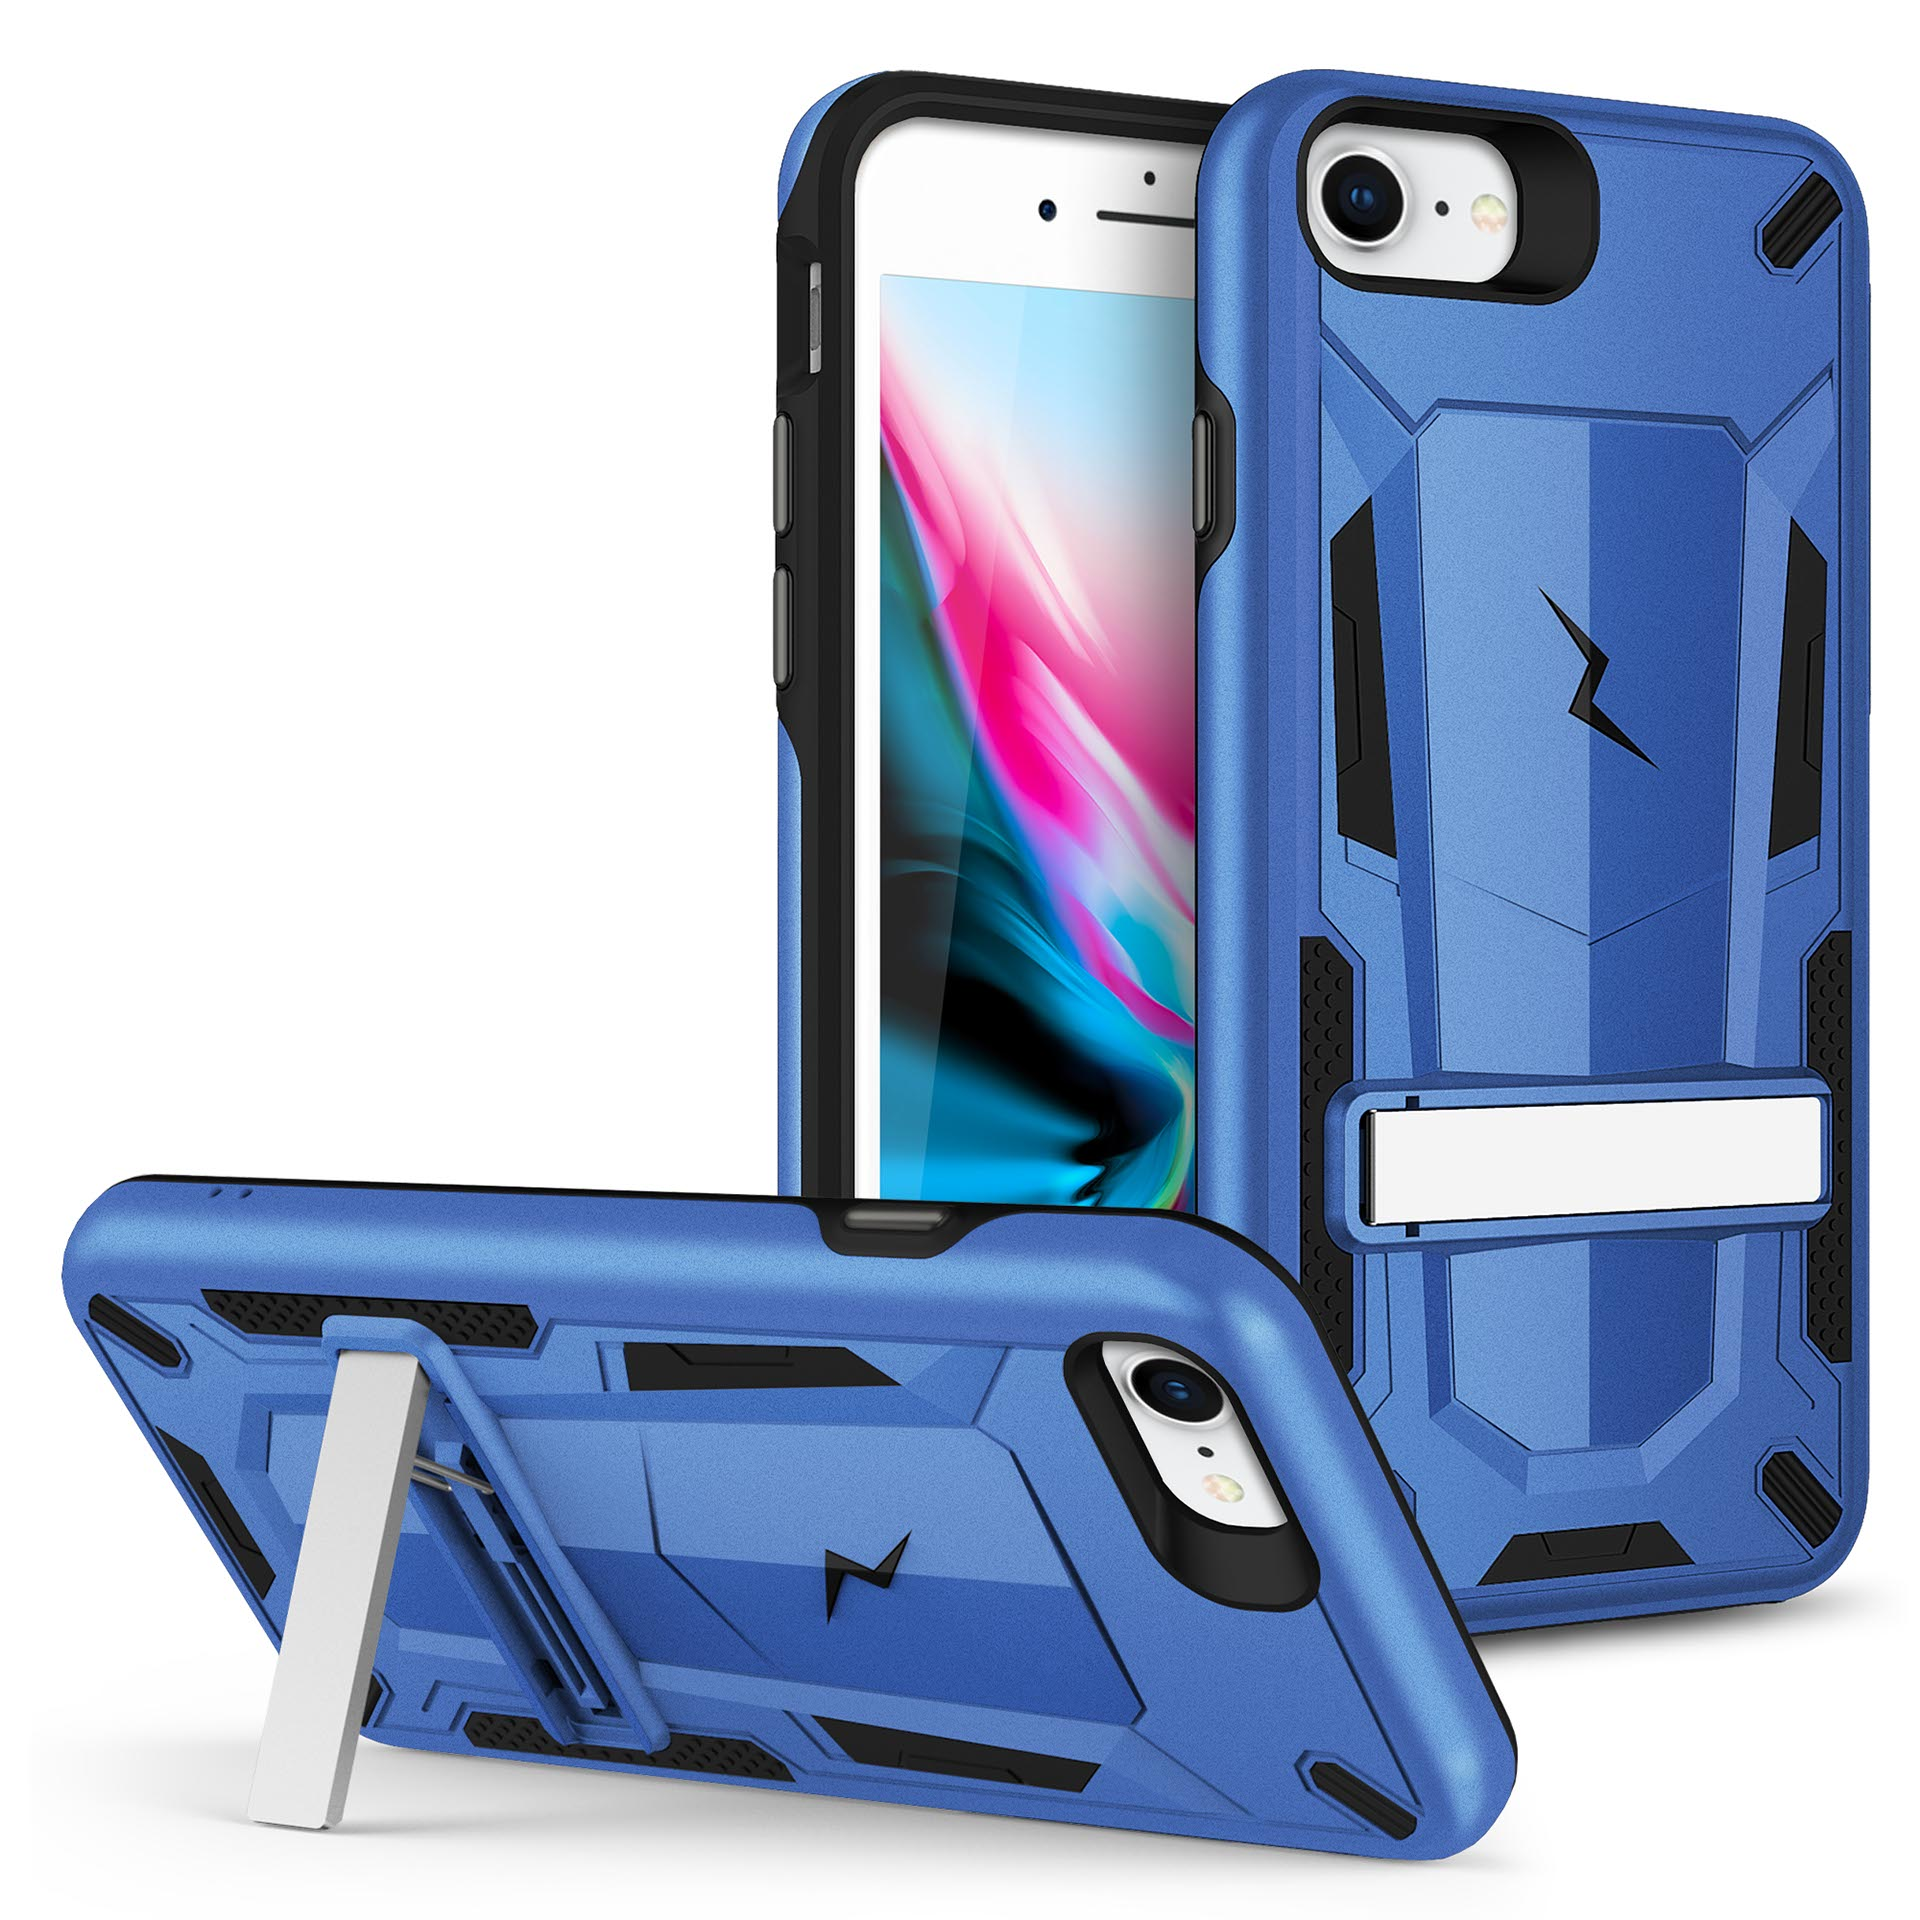 ZIZO TRANSFORM Series Case for iPhone SE (2020) / iPhone 8 / iPhone 7 Blue